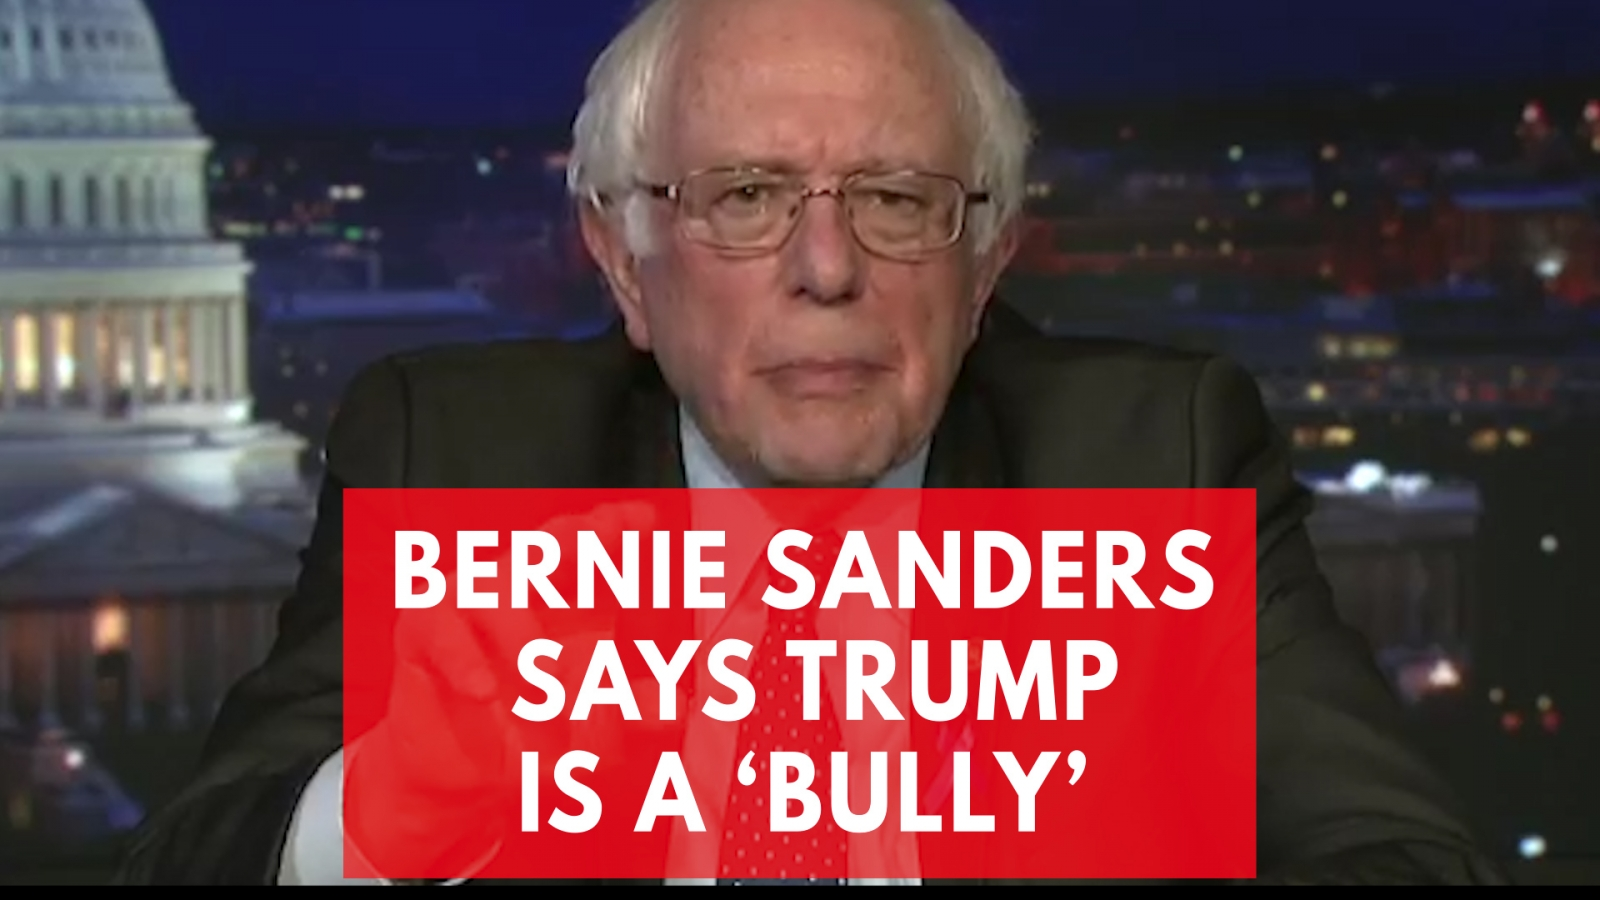 Bernie Sanders Says Trump Is A 'Bully' After The State Of The Union